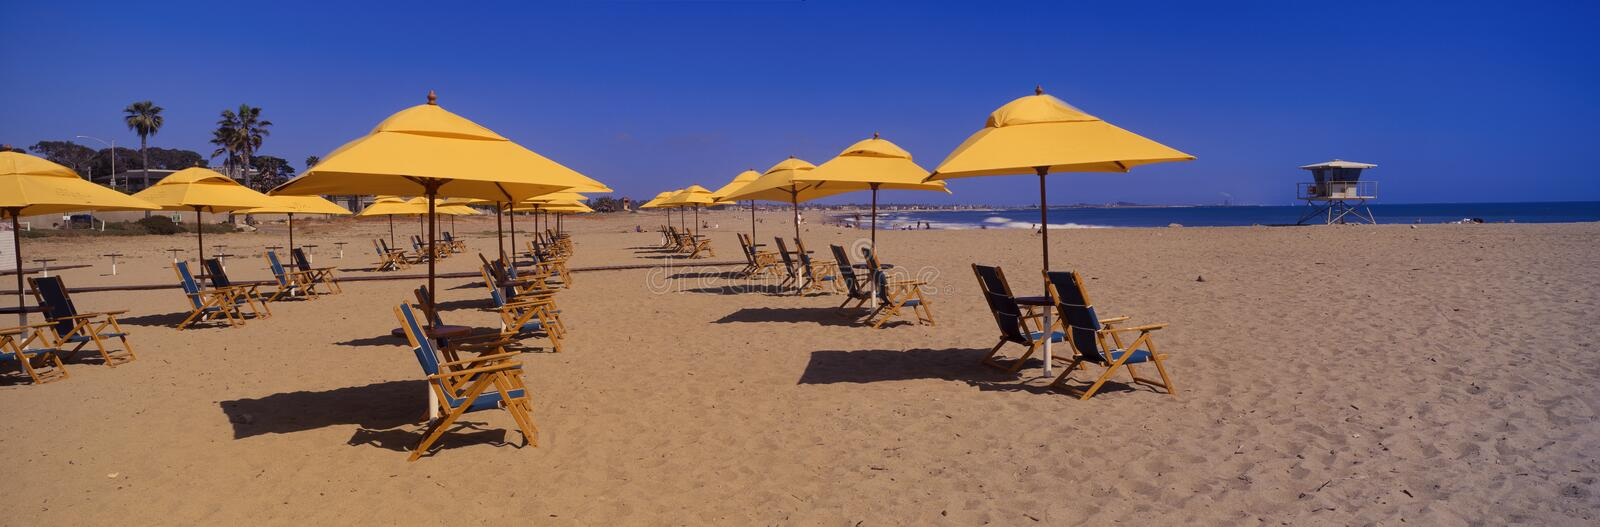 Download Yellow Umbrellas And Beach Chairs Stock Photo - Image: 23176376